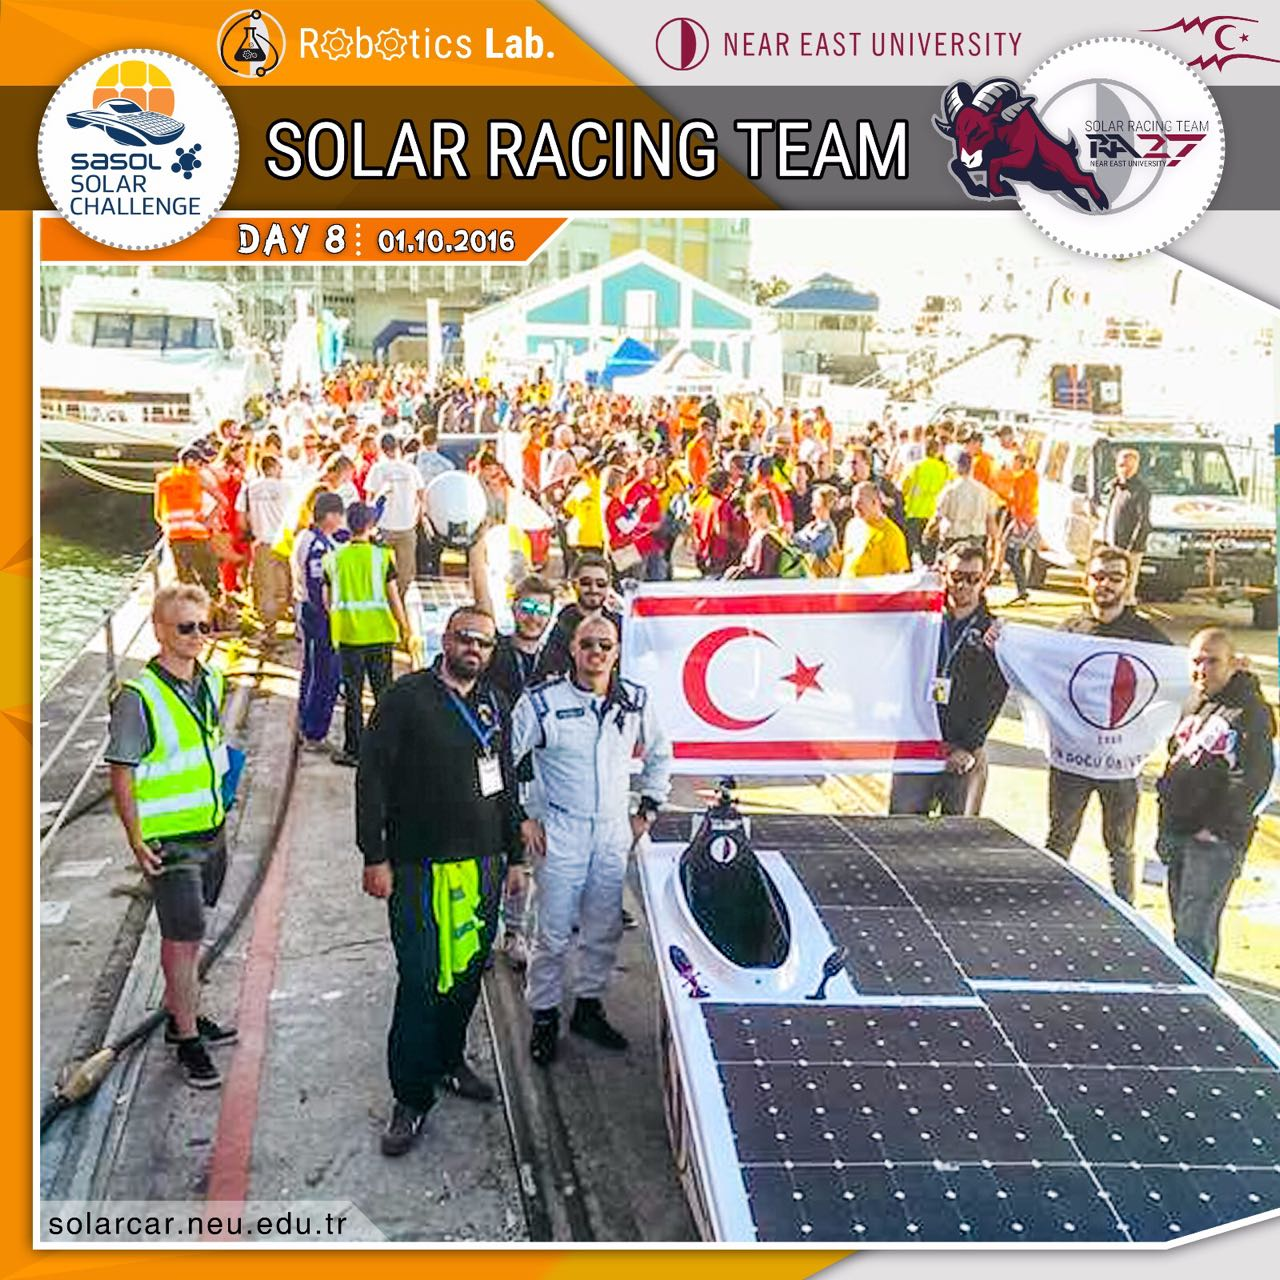 In South Africa Challenge, NEU-RA 27 ranks the leader-board as the 6th best solar team of the world